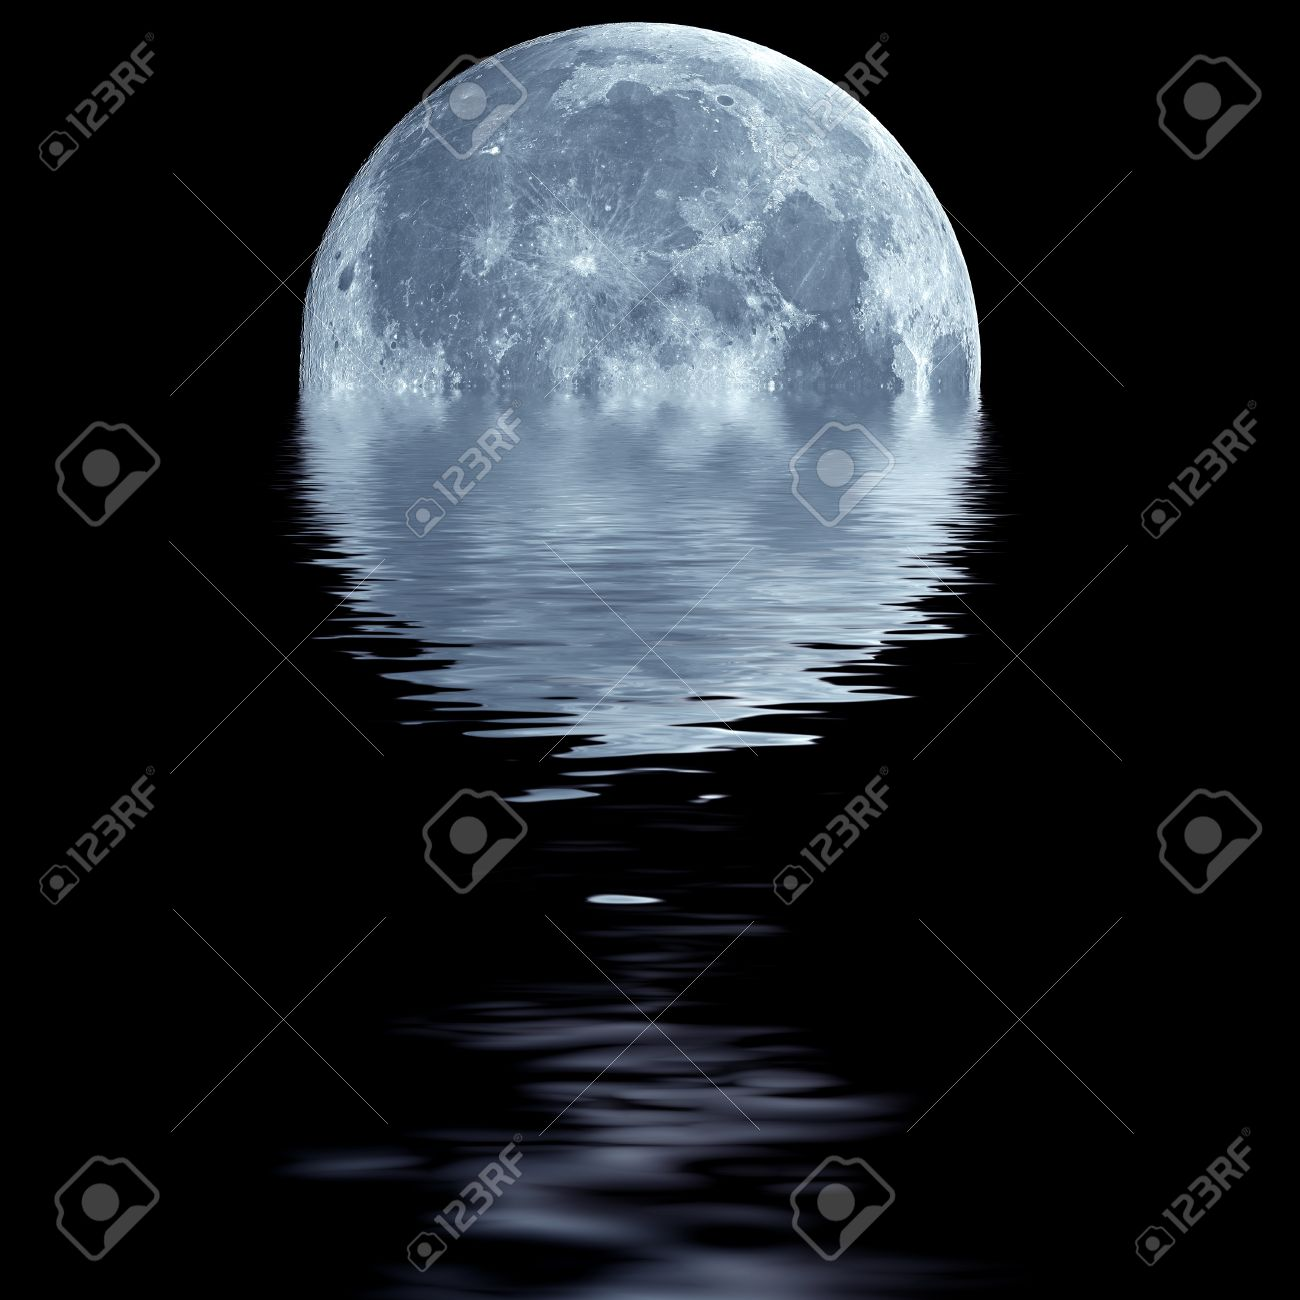 Fantasy Wallpaper Of Blue Moon Over Water Stock Photo